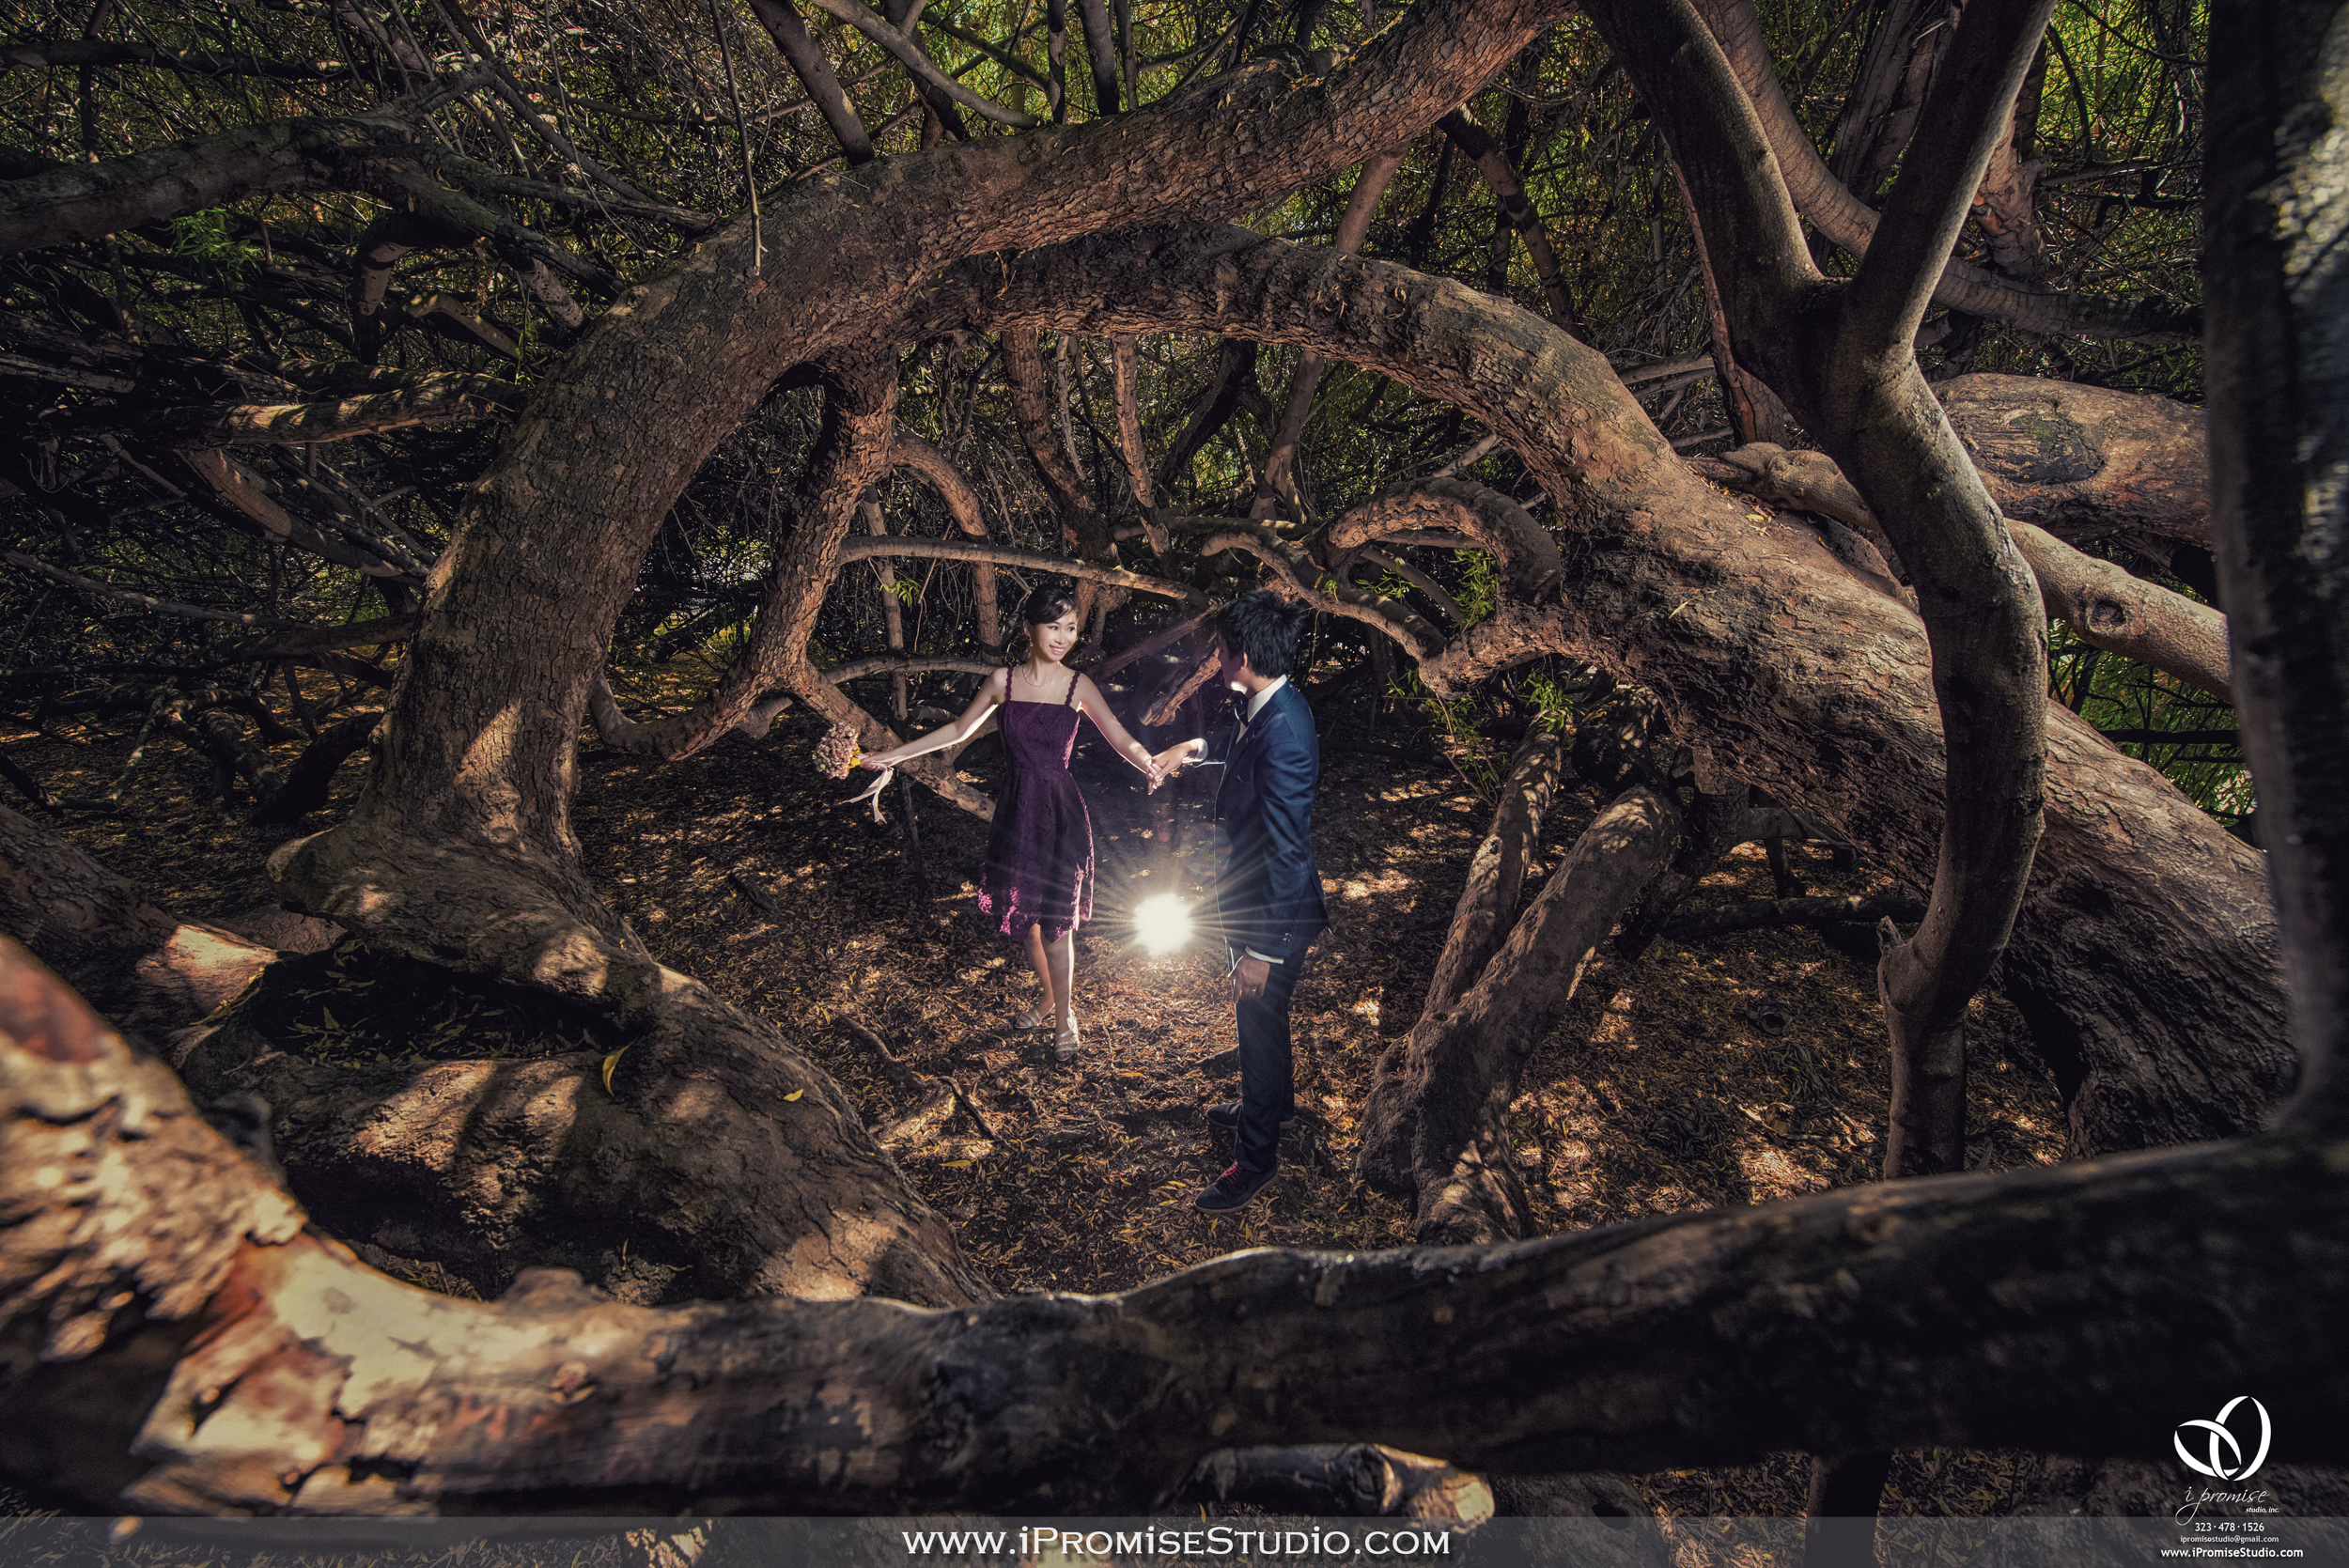 Arcadia Los Angeles County Arboretum and Botanic Garden ungle Forest-engagement wedding 13.JPG